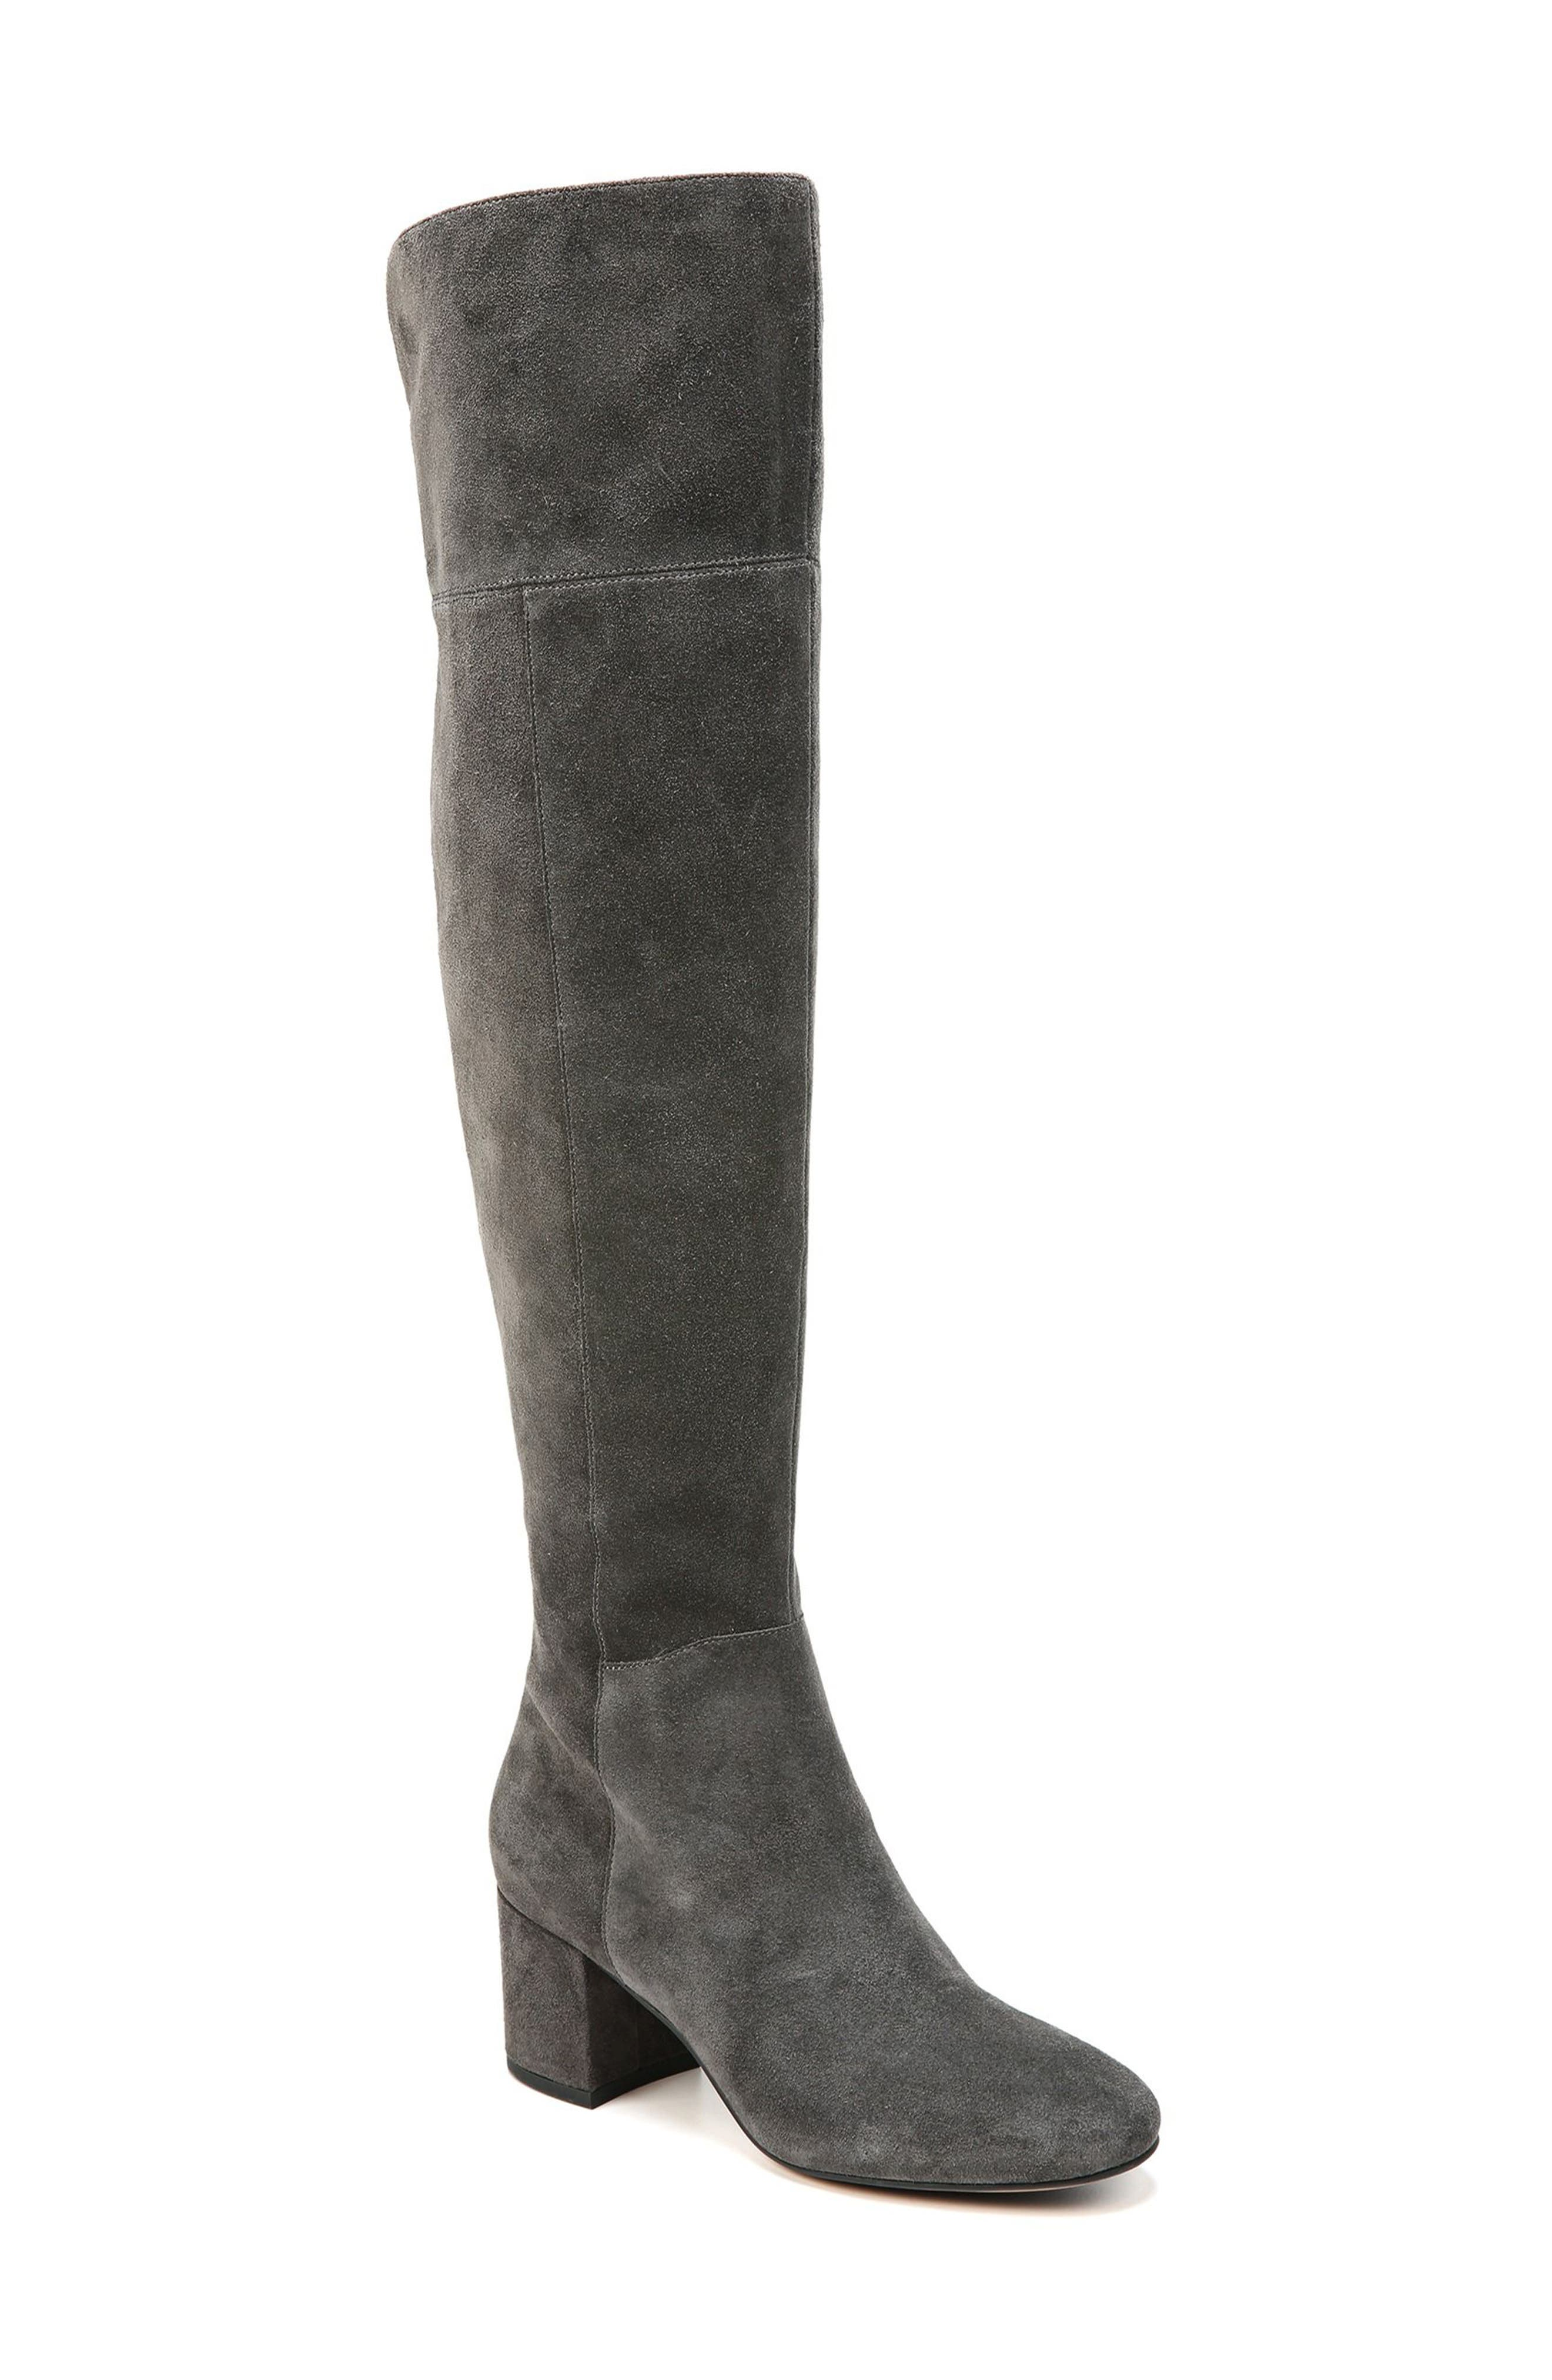 Alternate Image 1 Selected - SARTO by Franco Sarto Korrine Over the Knee Boot (Women)